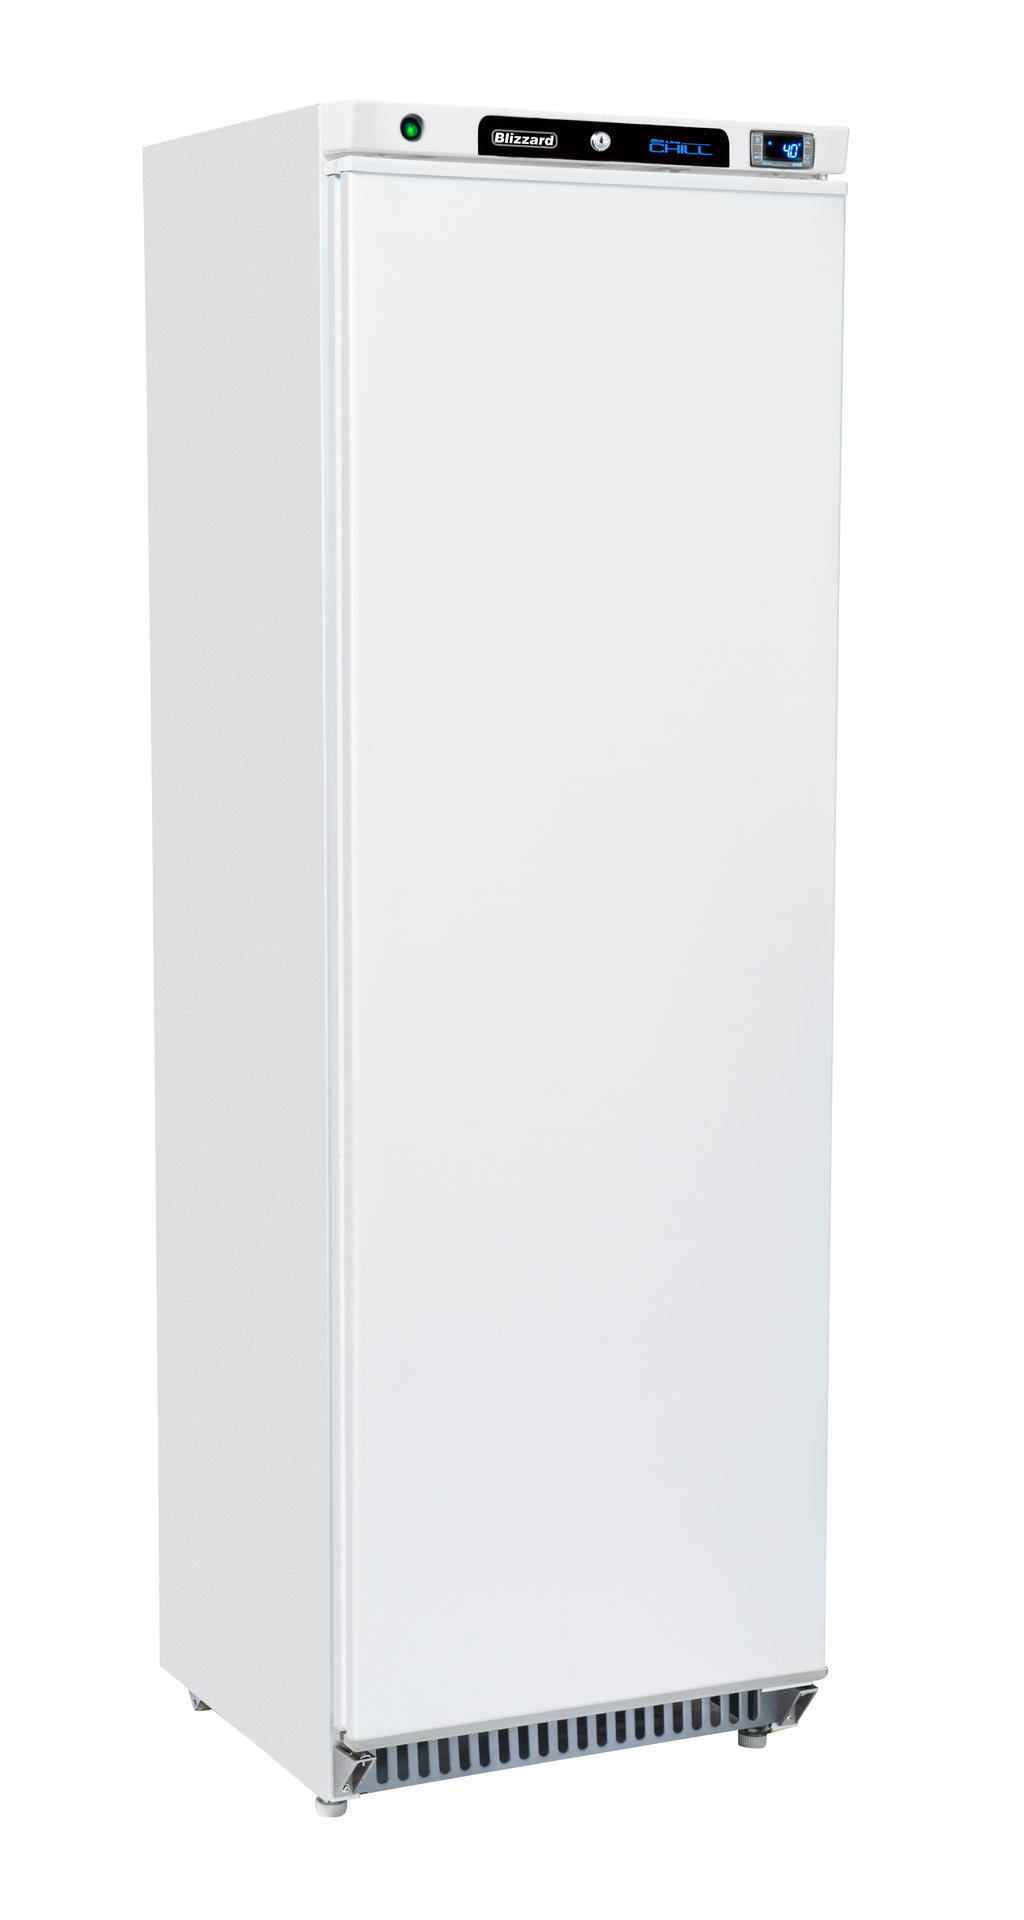 Blizzard Upright Refrigerator - 380 Litre White,Solid Door Refrigerator,Blizzard